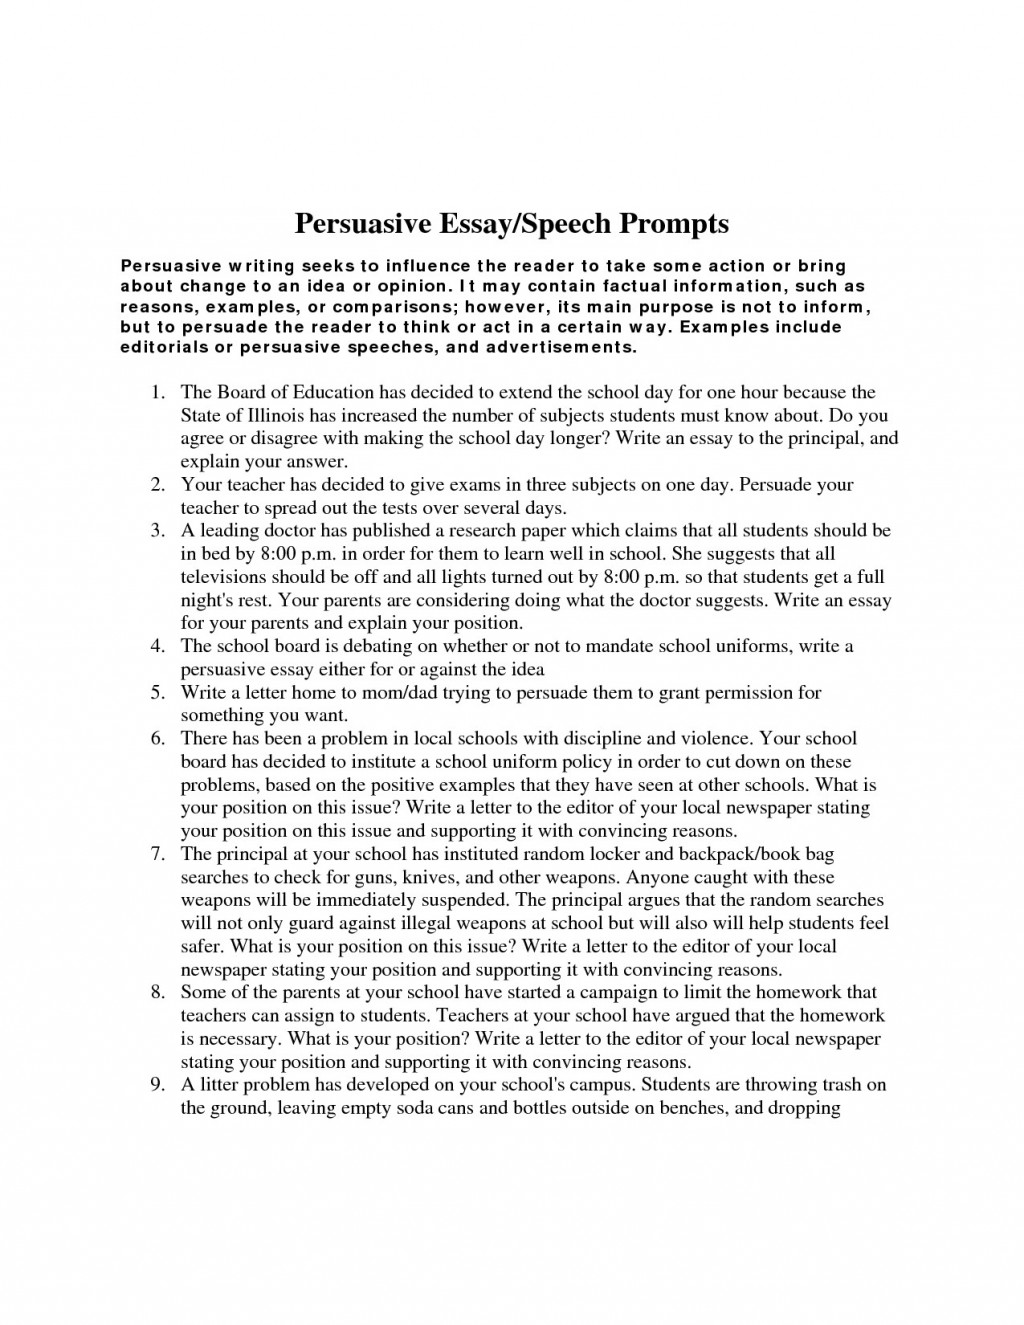 009 Essay Example Persuasive Prompts Argumentative Topics For High Awesome School Middle Schoolers Students Large